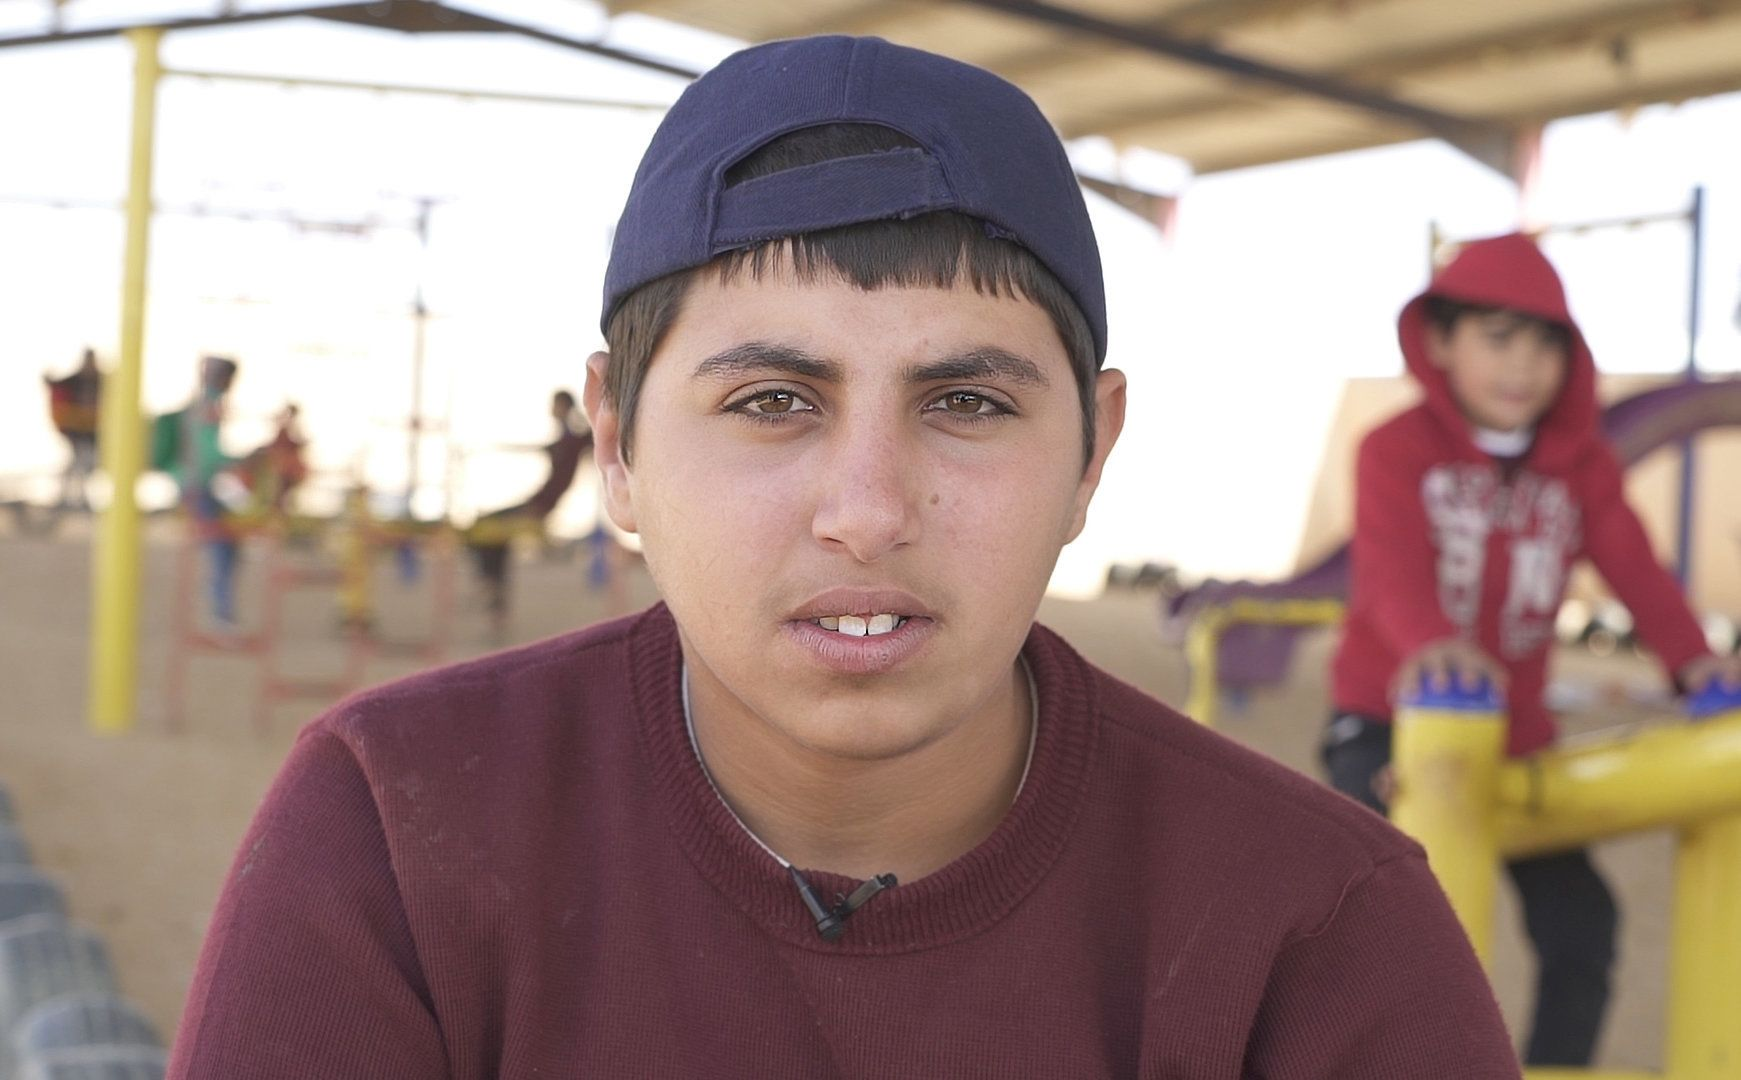 Syrian Refugee Children Are Facing A Mental Health Crisis, But This Is How They're Being